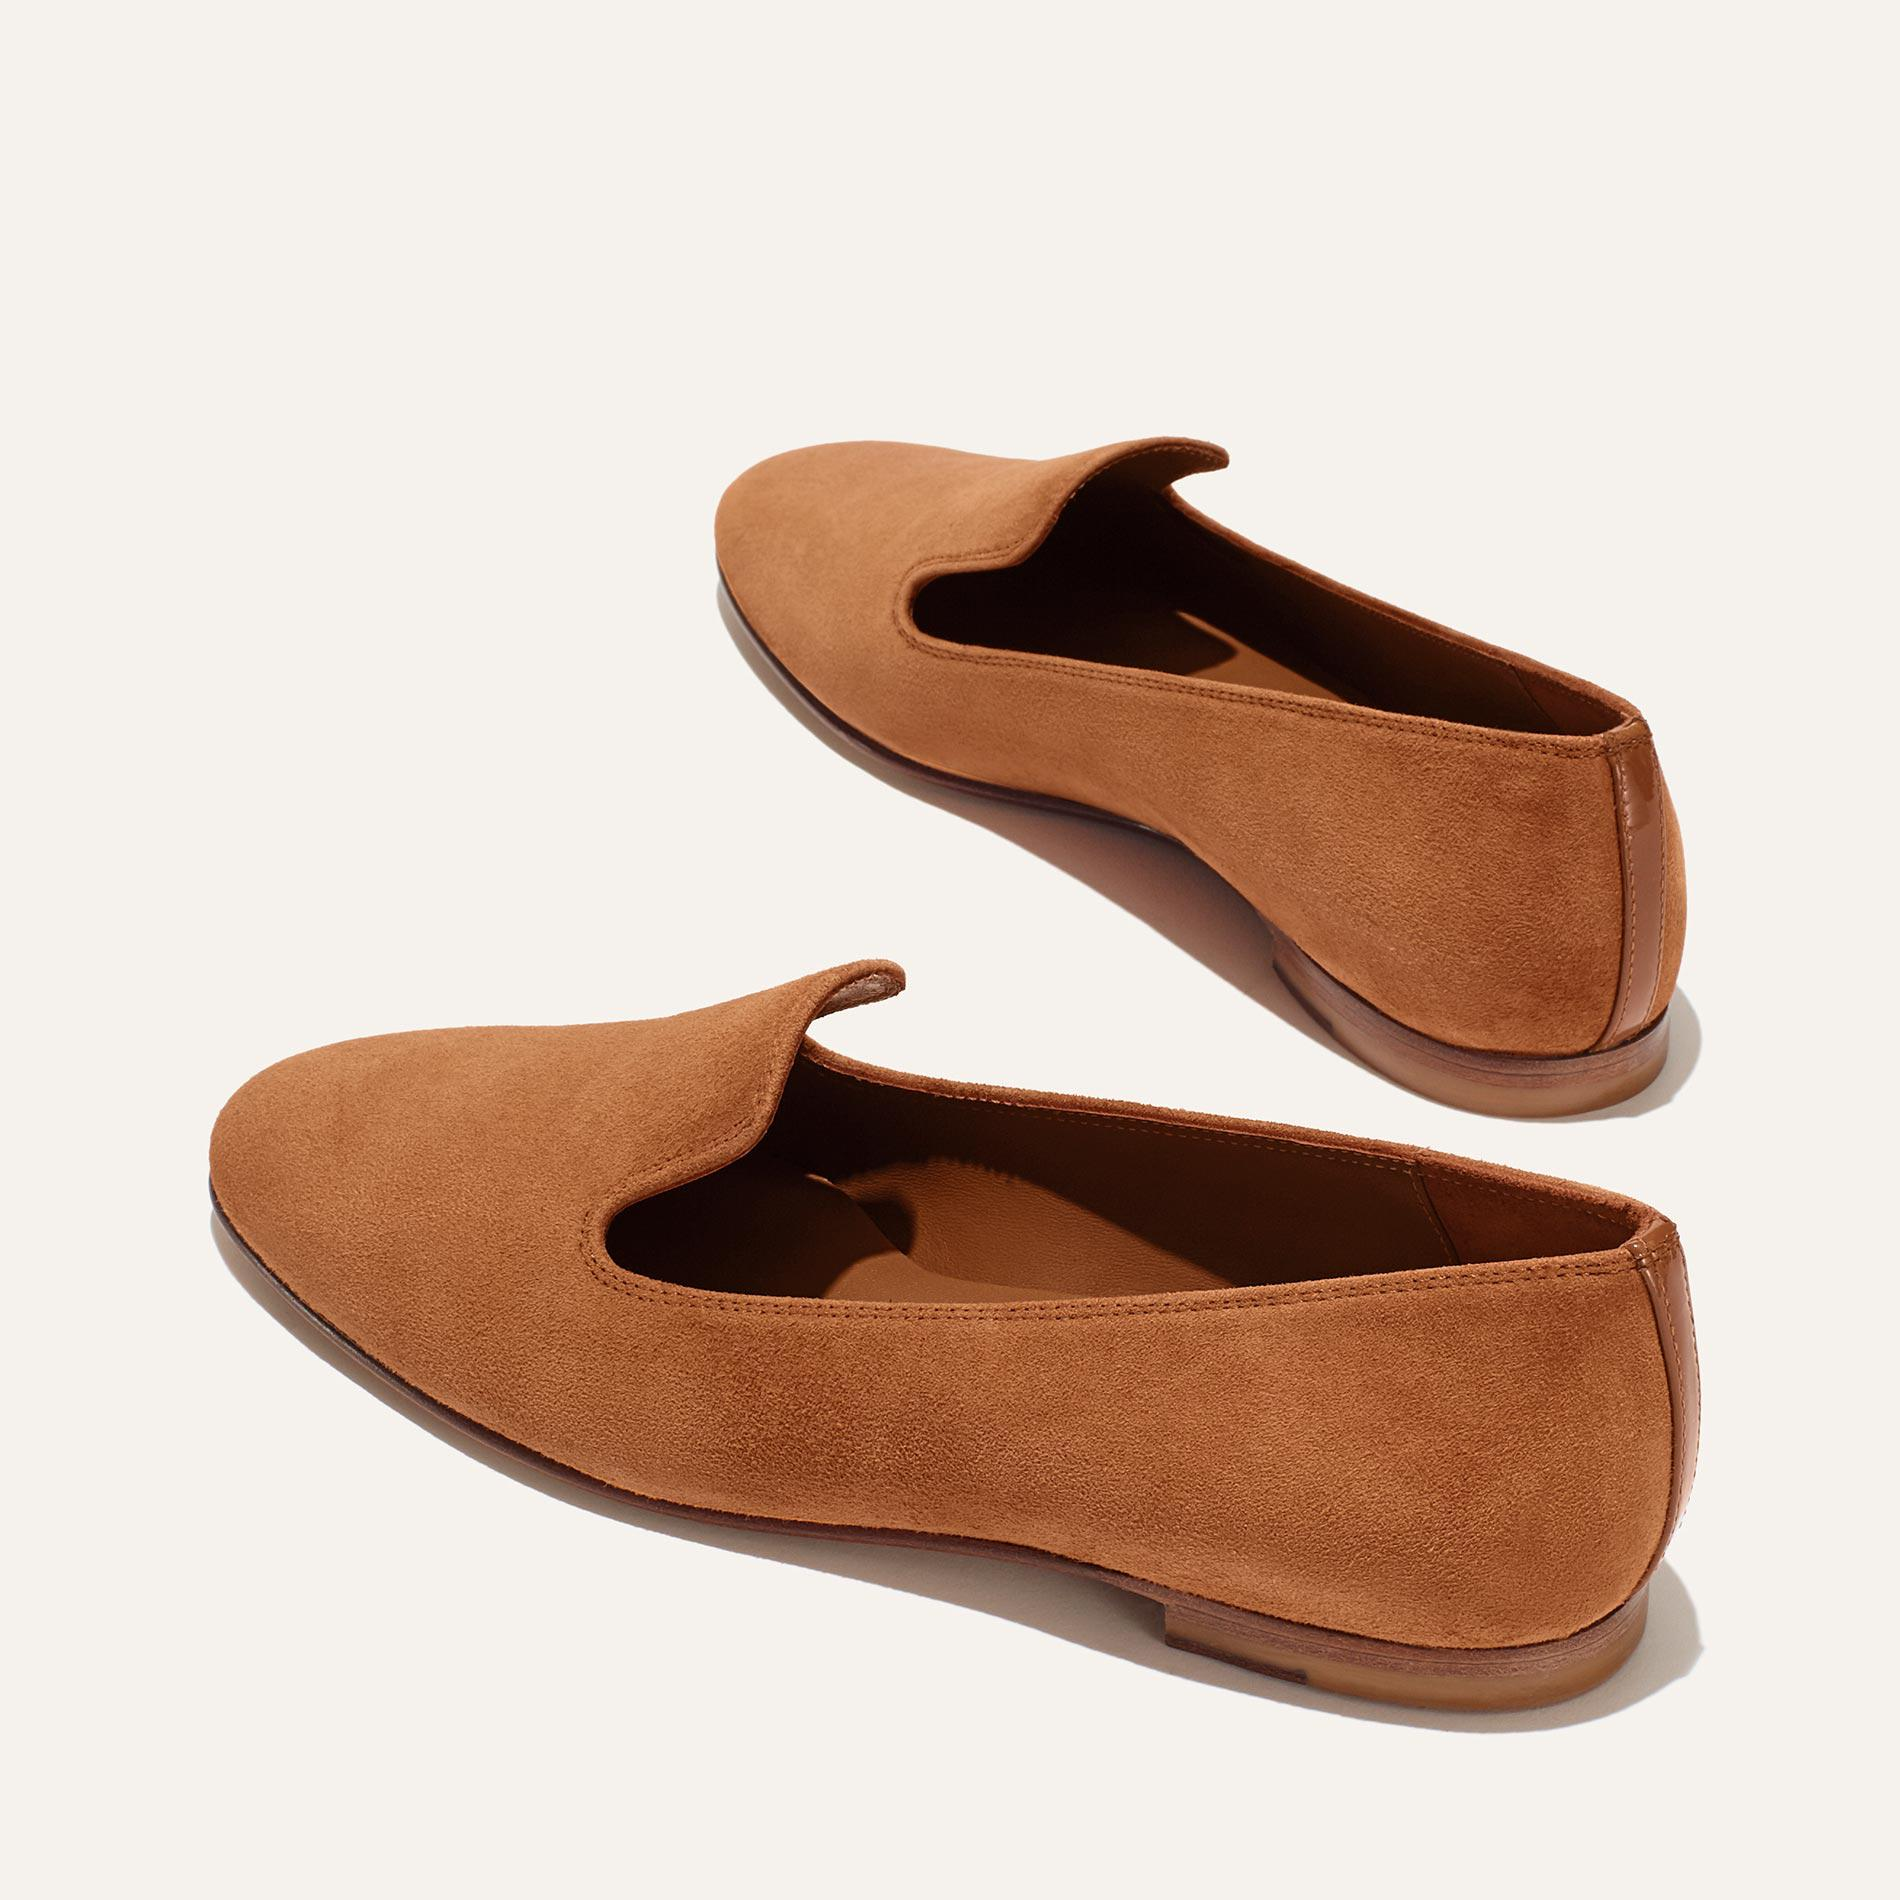 The Loafer - Cognac 3